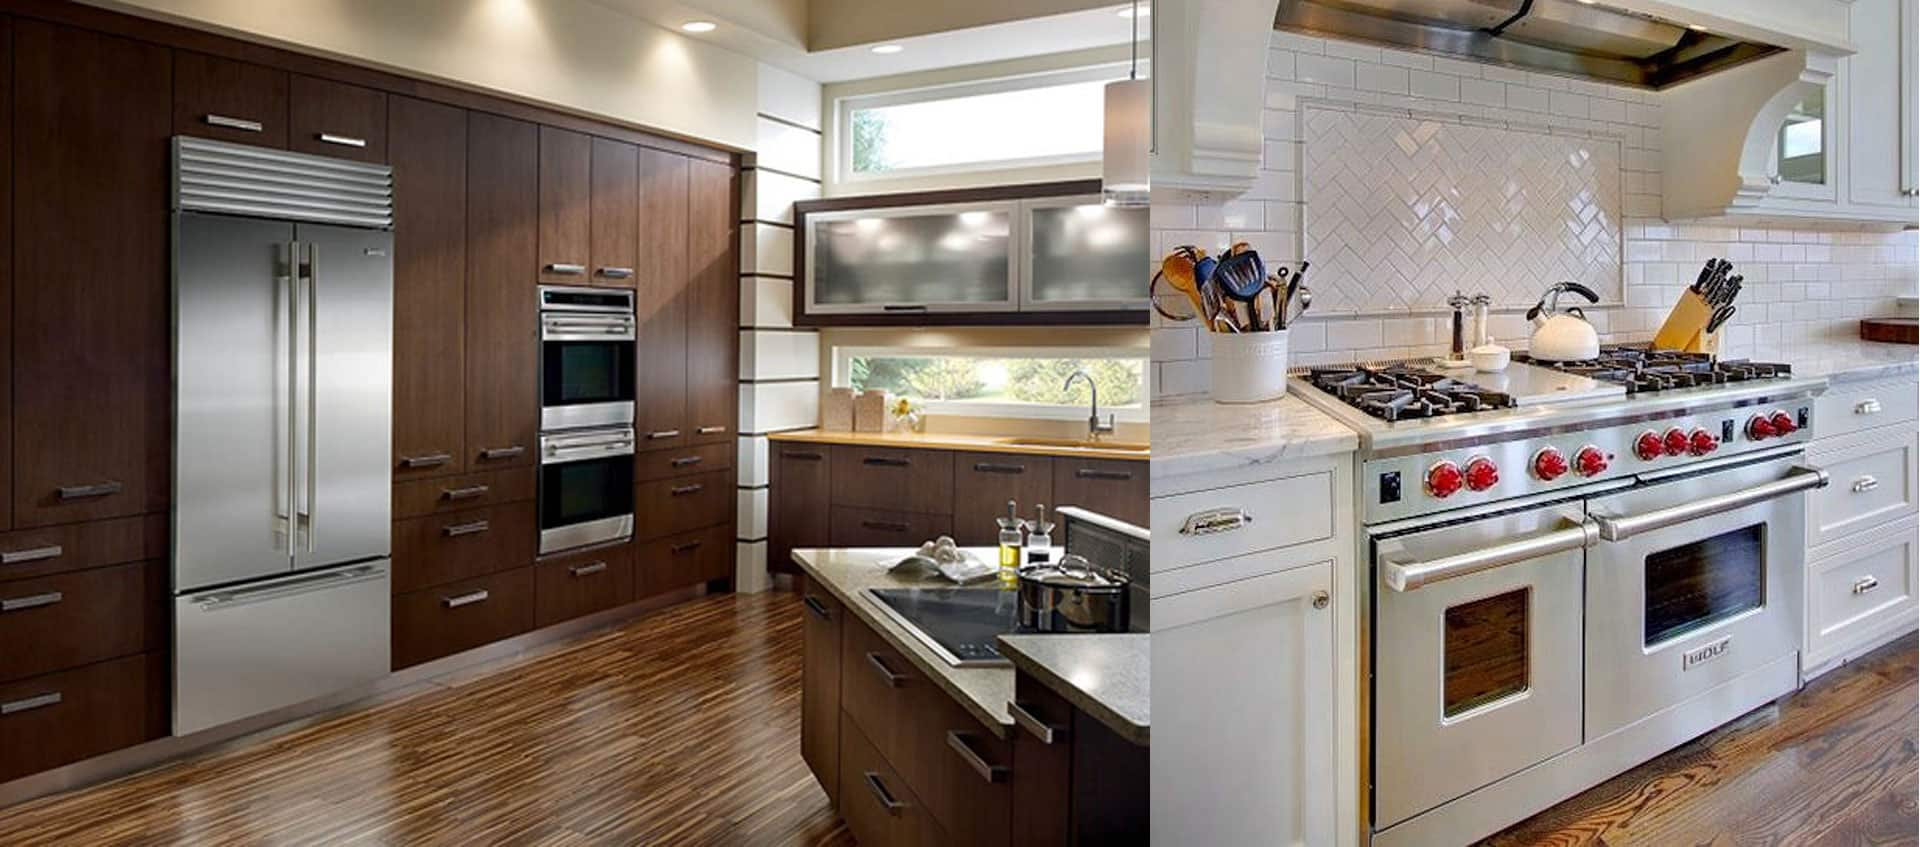 Sub Zero Appliance Repair And Service In San Diego